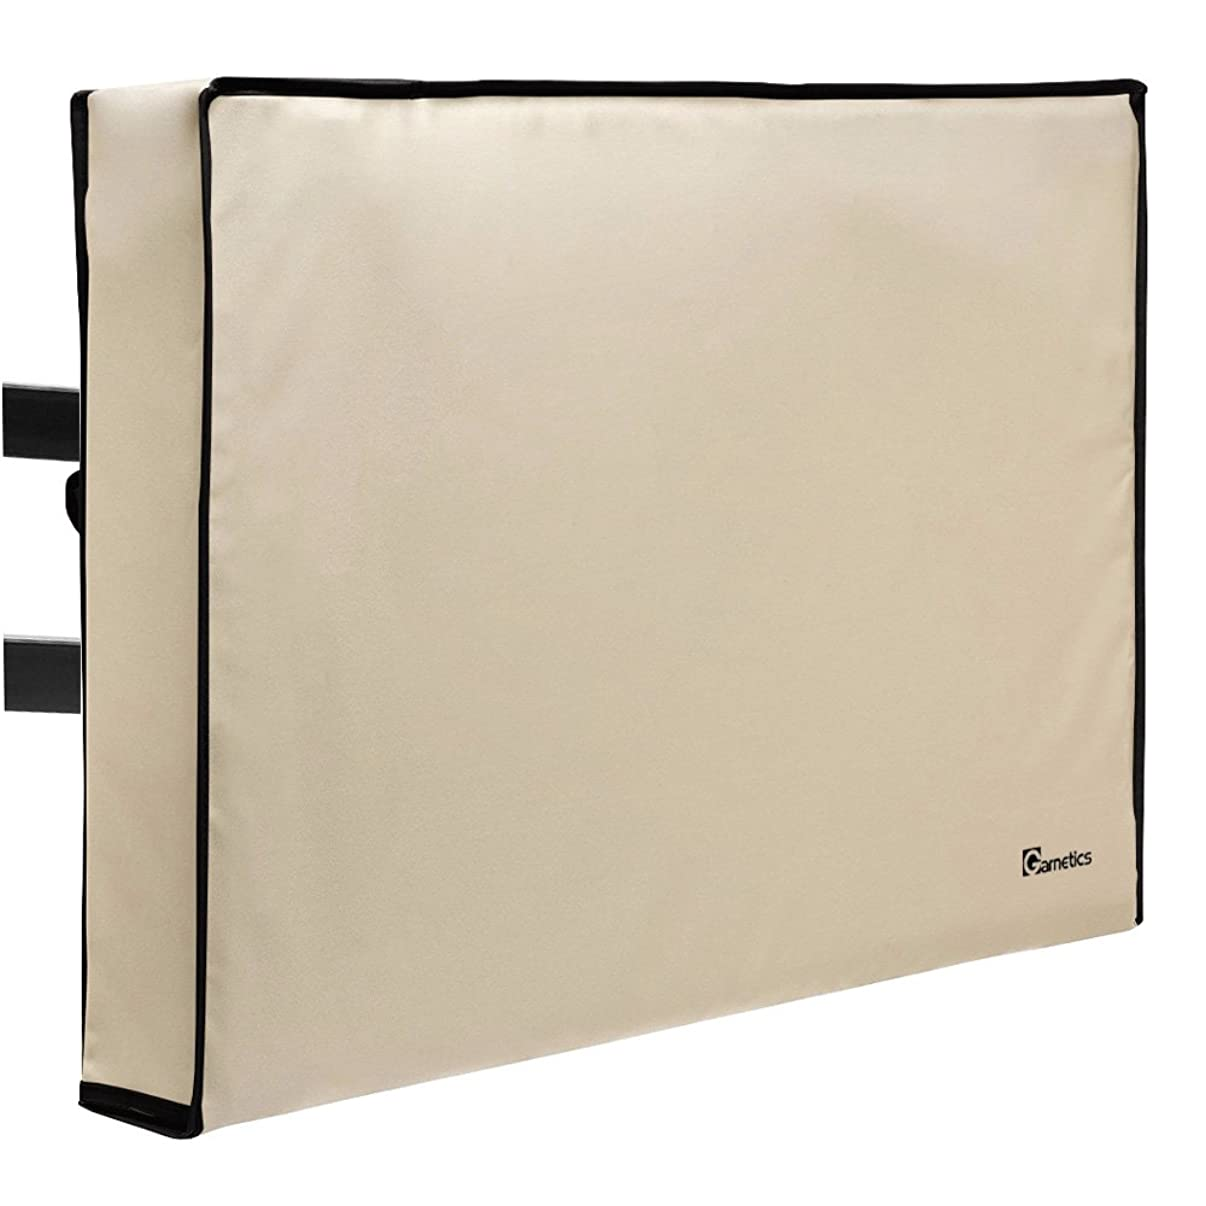 Outdoor TV Cover 52